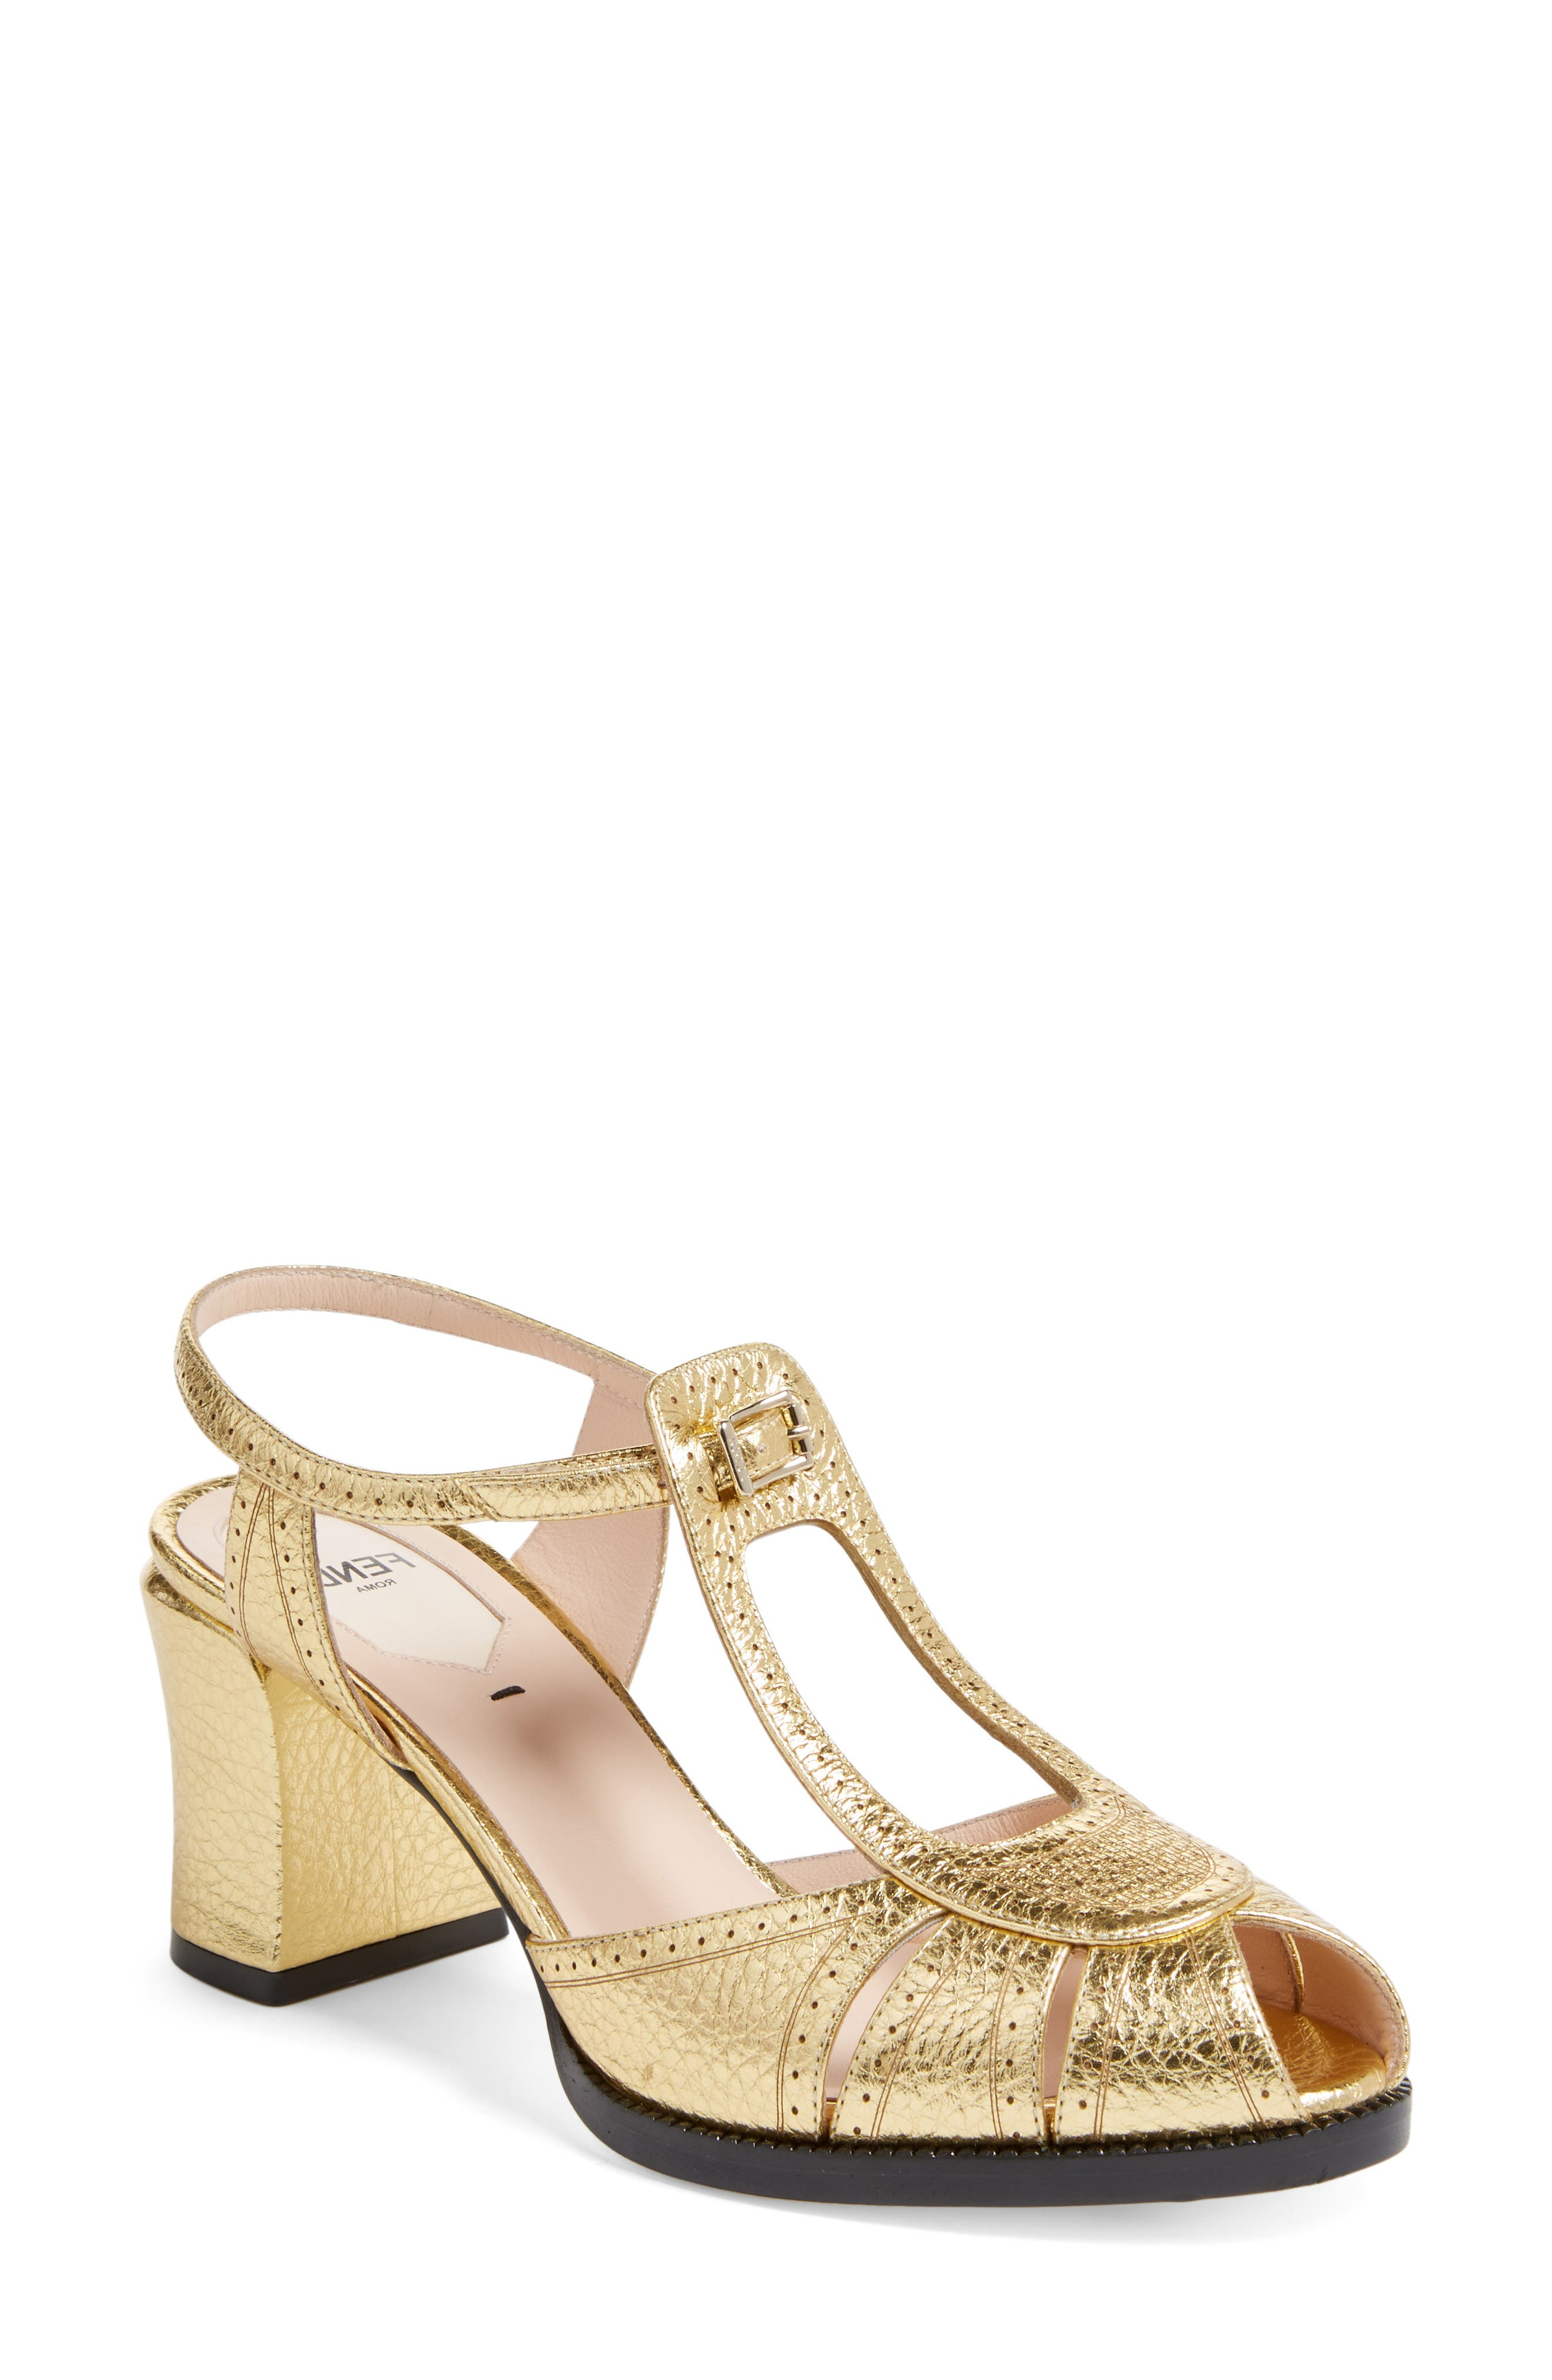 Fendi Chameleon Leather Sandal (Women)